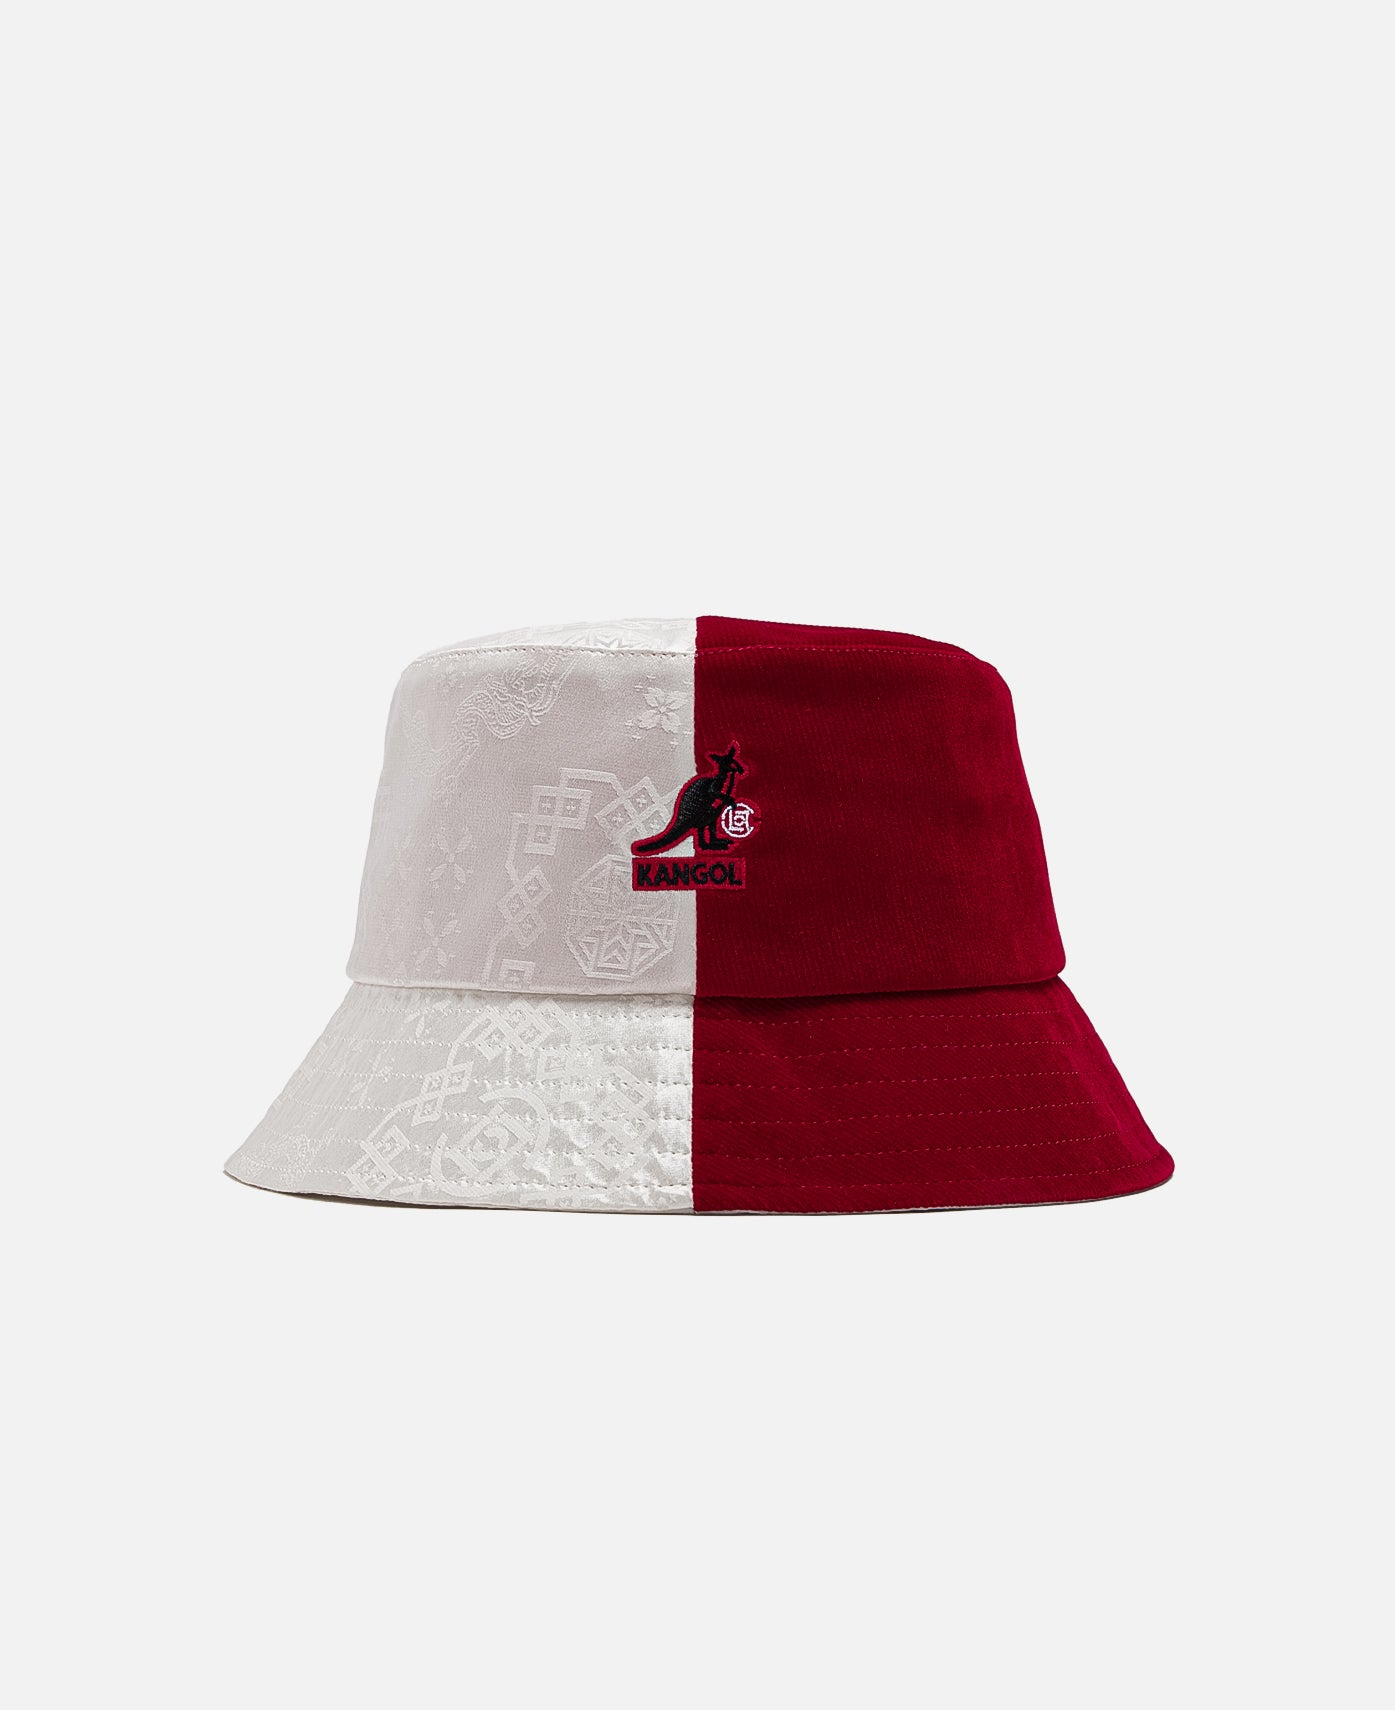 KANGOL X CLOT CORD BUCKET, RED